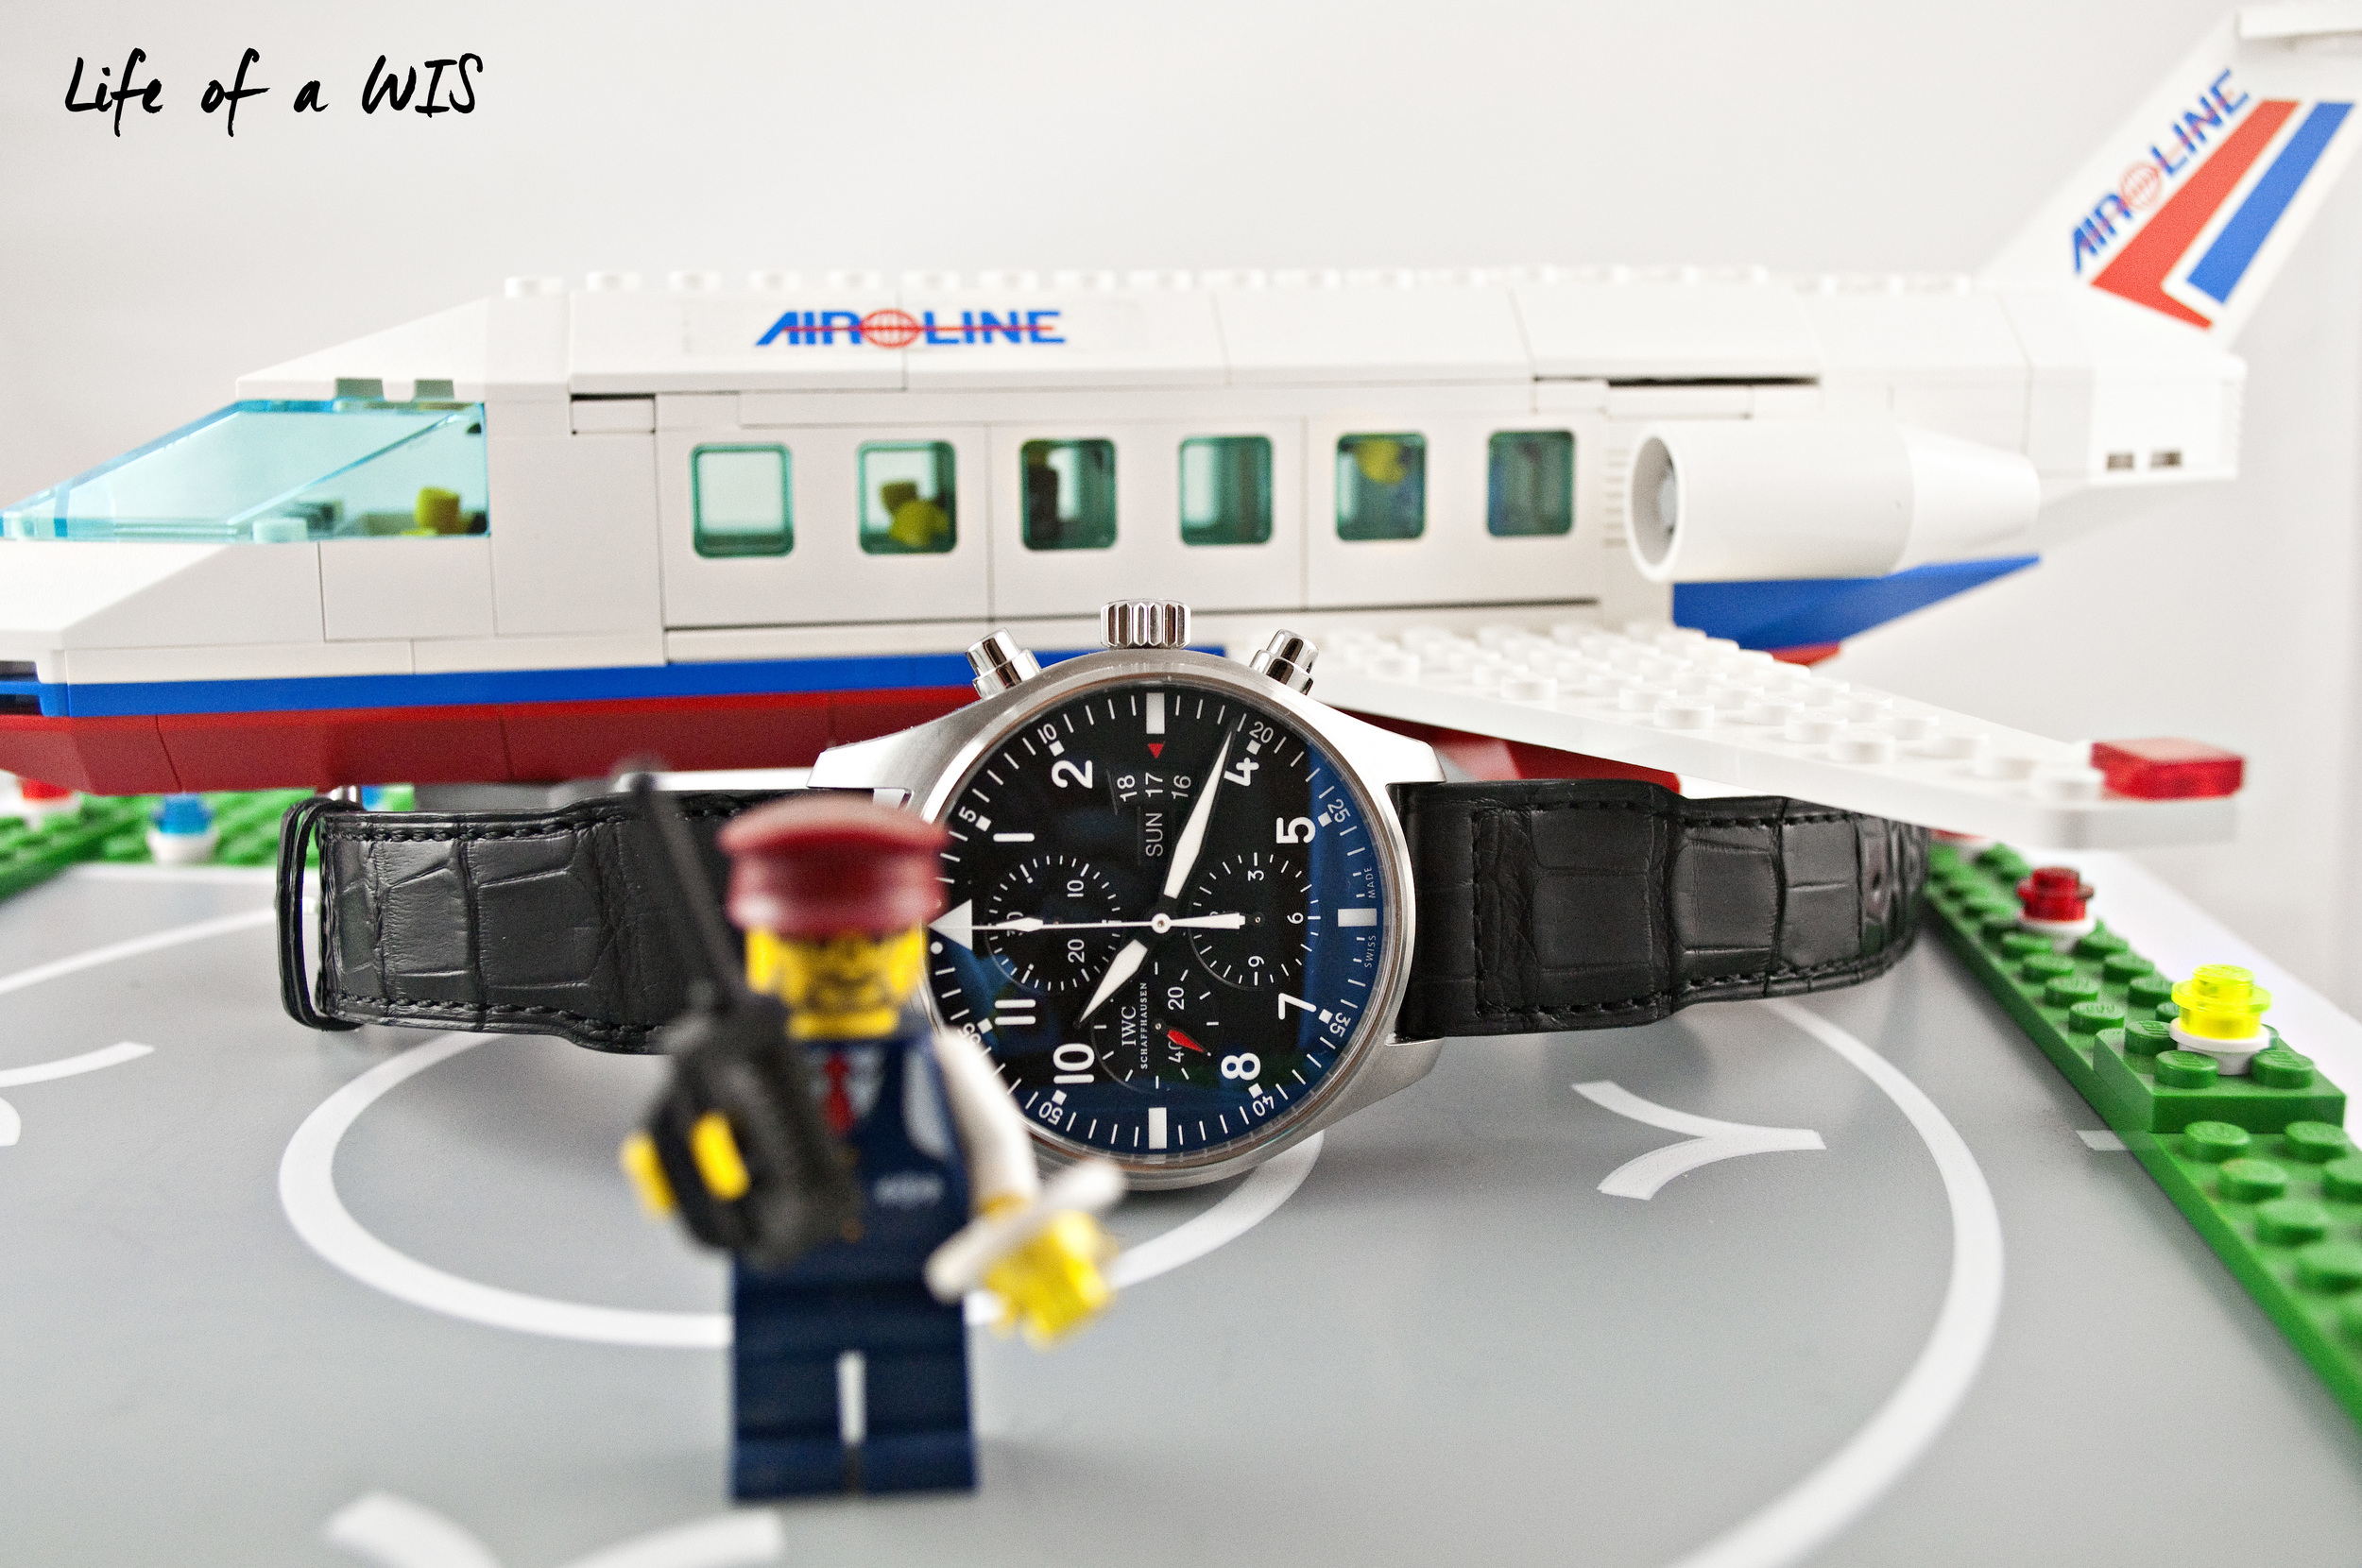 The Pilot is ready for take off!